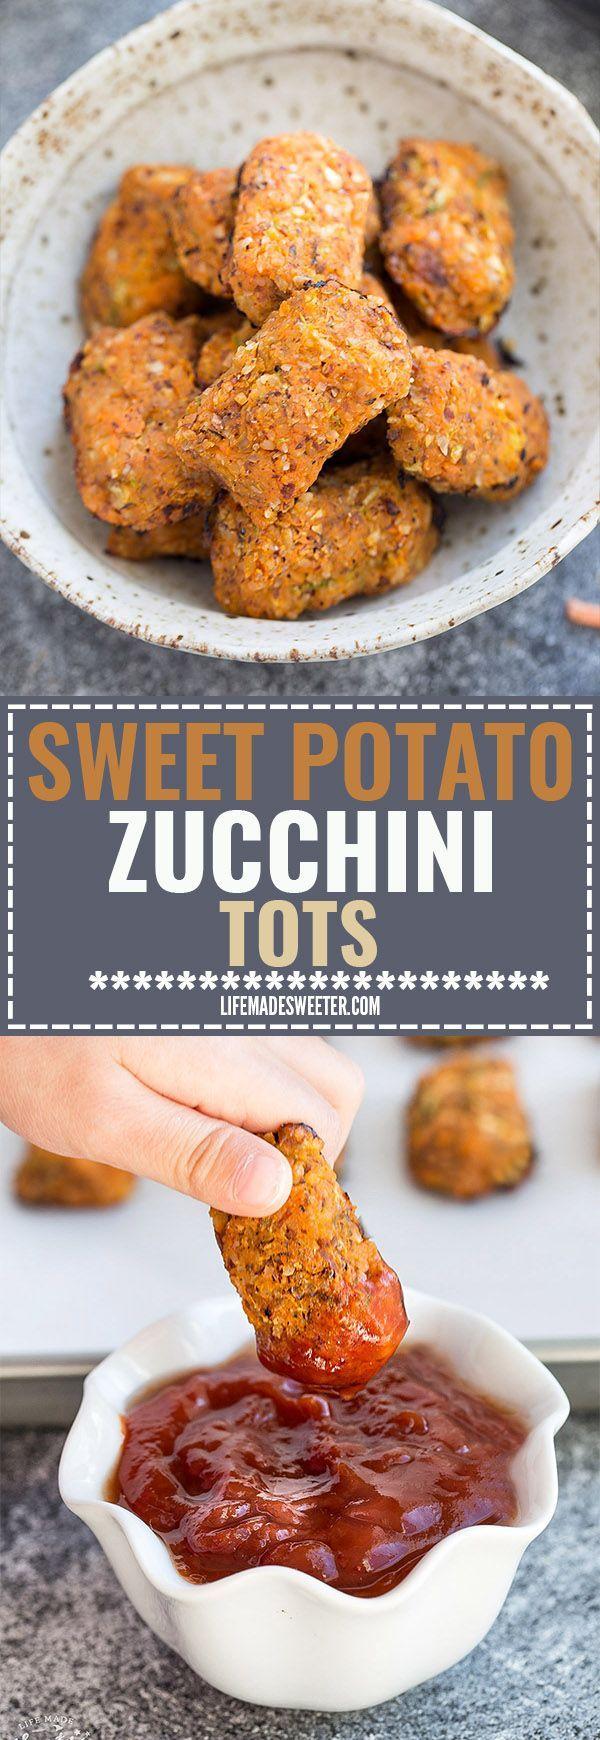 Sweet Potato & Zucchini Tots make the perfect easy & healthy snack. Best of all, they're paleo friendly, gluten free, vegan, and whole 30 compliant.